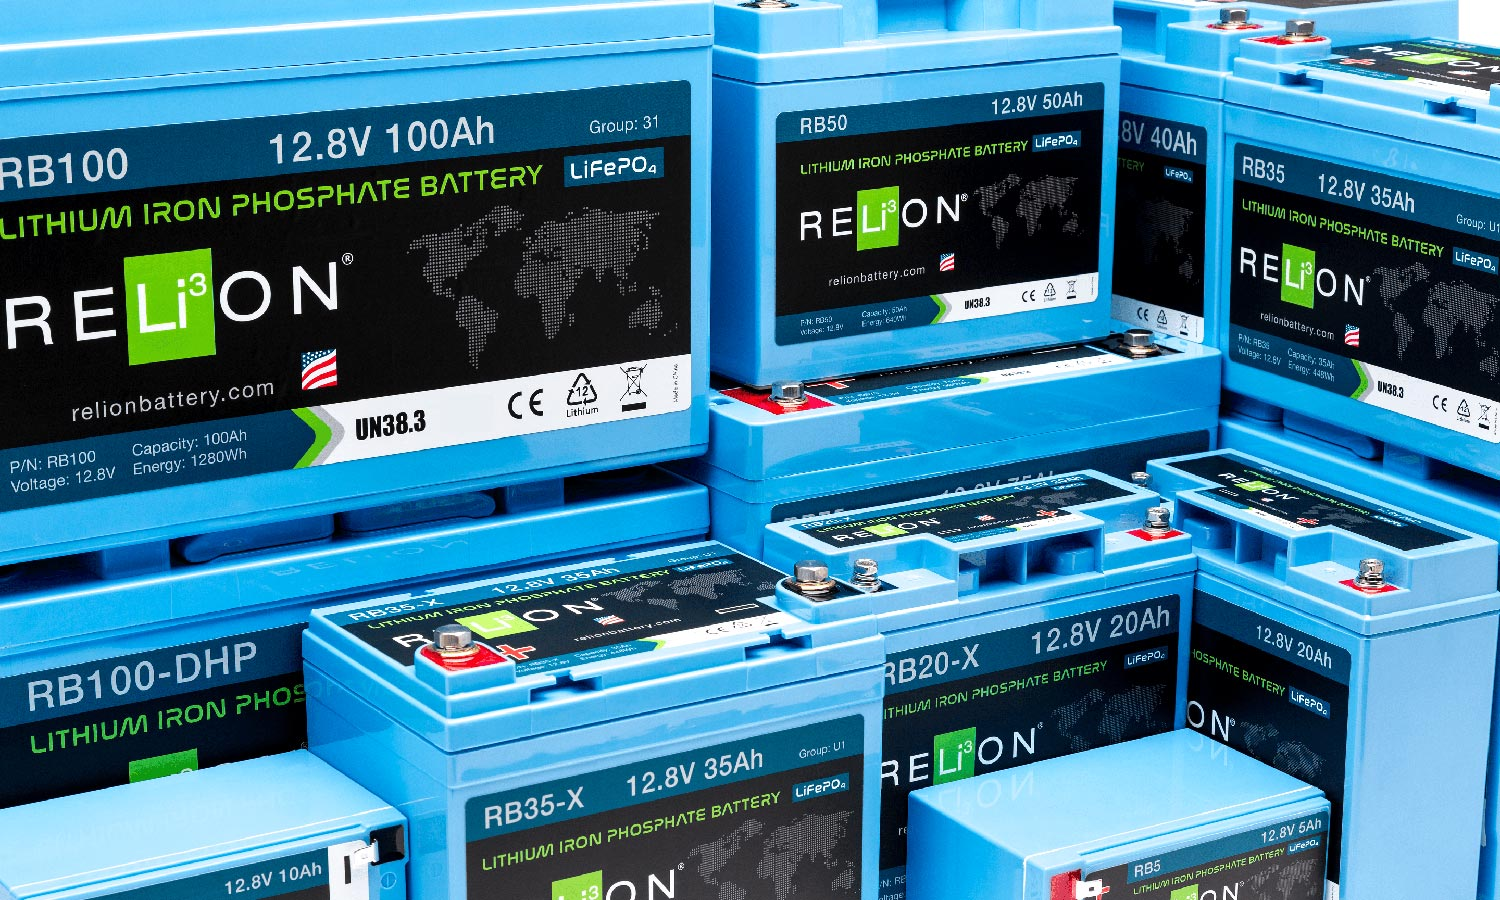 Relion lithium battery catamaran